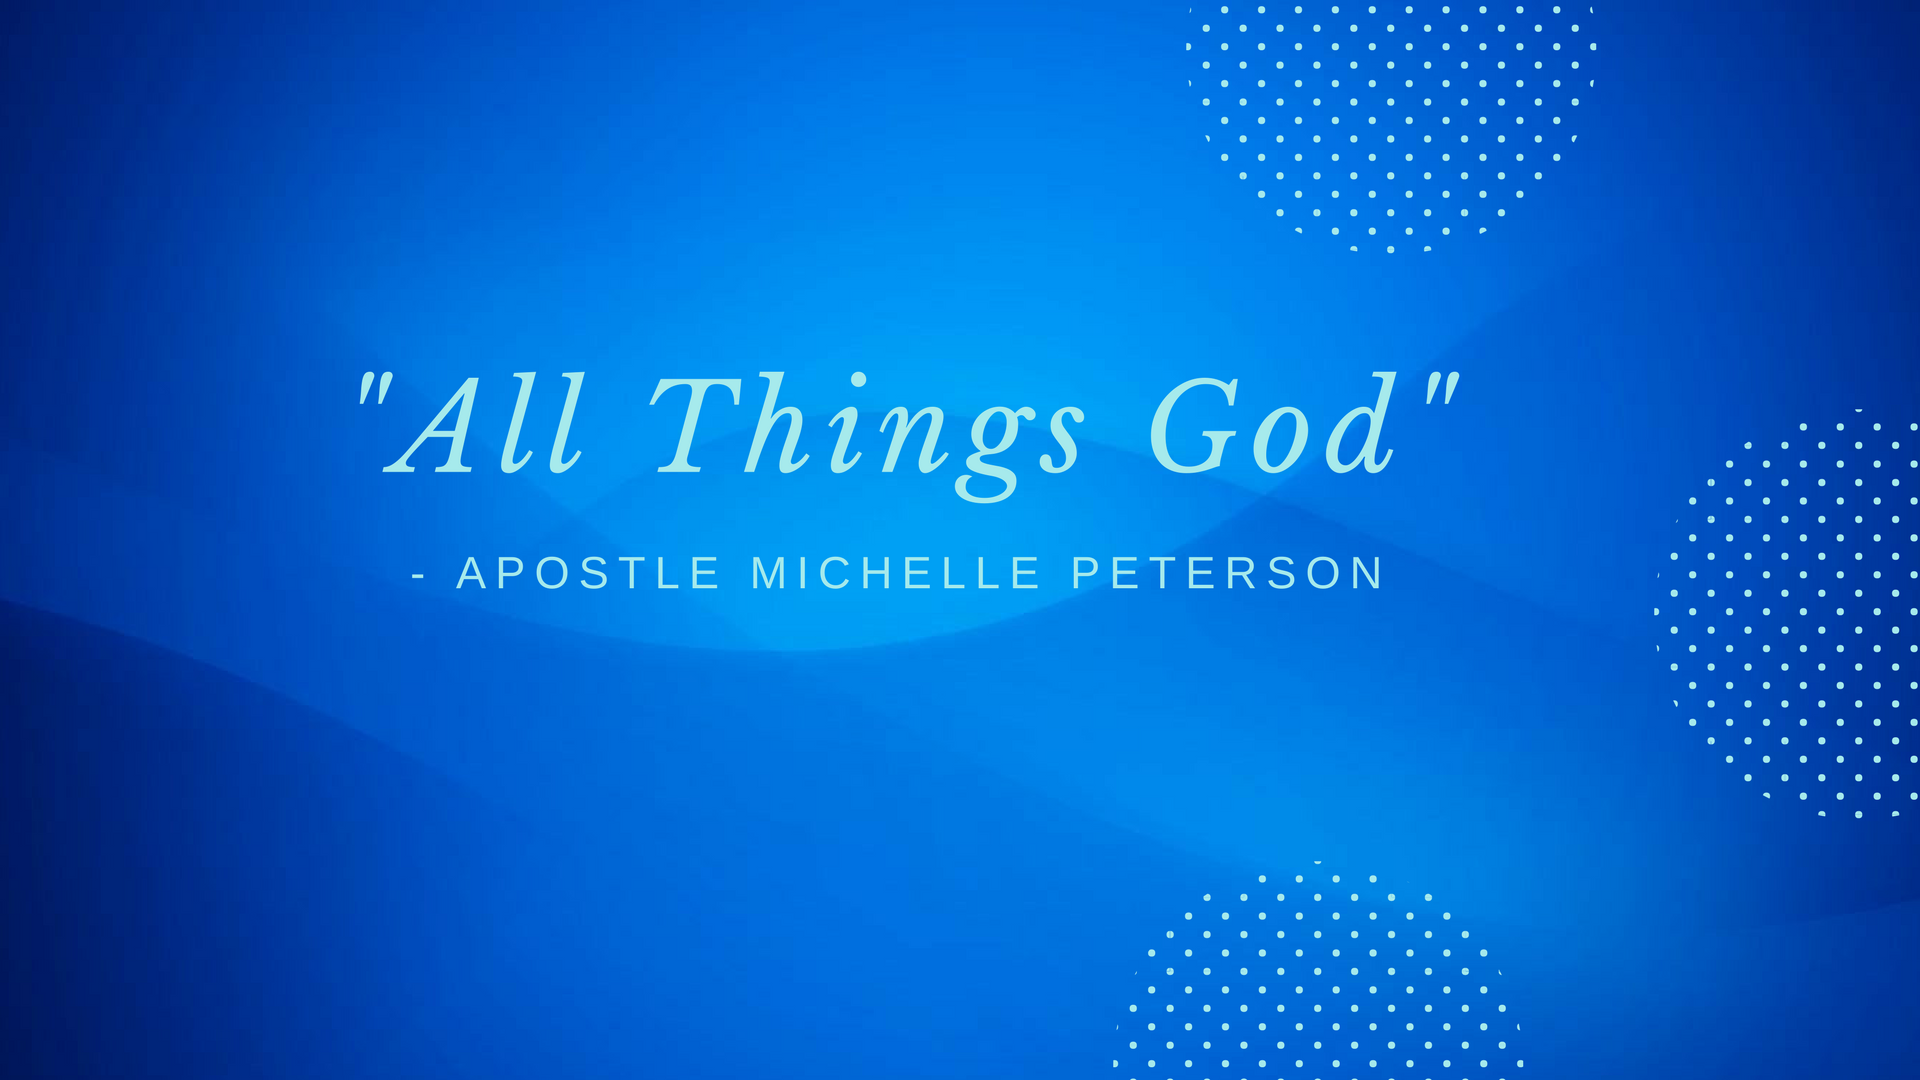 Apostle Michelle Peterson